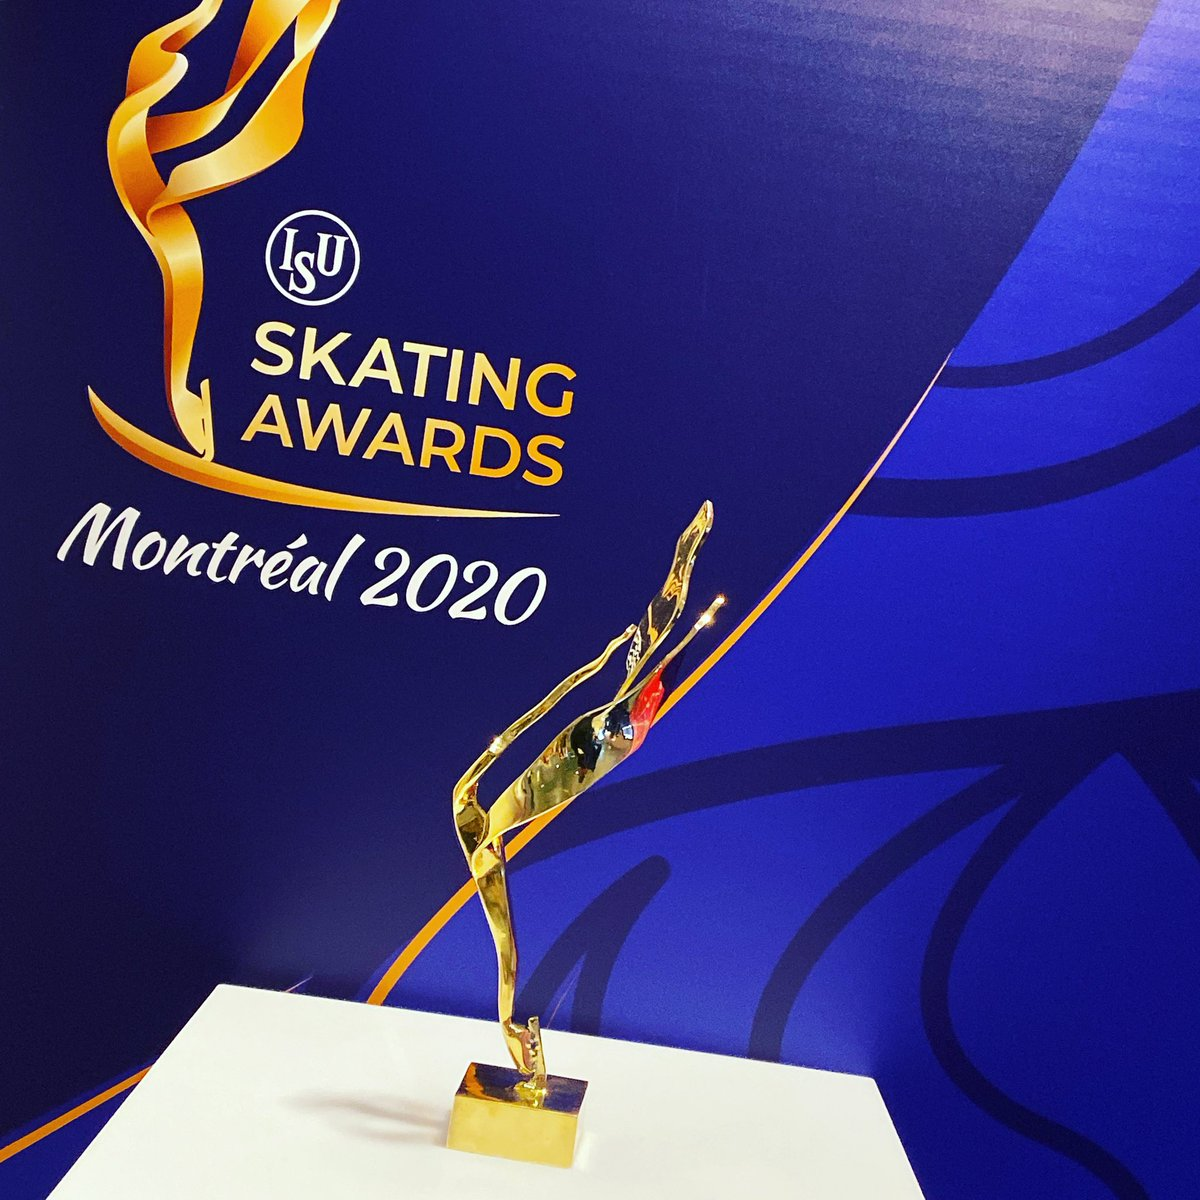 Who will be getting their hands on one of these at the end of the season?  #Montreal2020  #WorldFigure  #GPFigure #SkatingAwards <br>http://pic.twitter.com/yE3WIJBtZA – à Palavela Patinoire